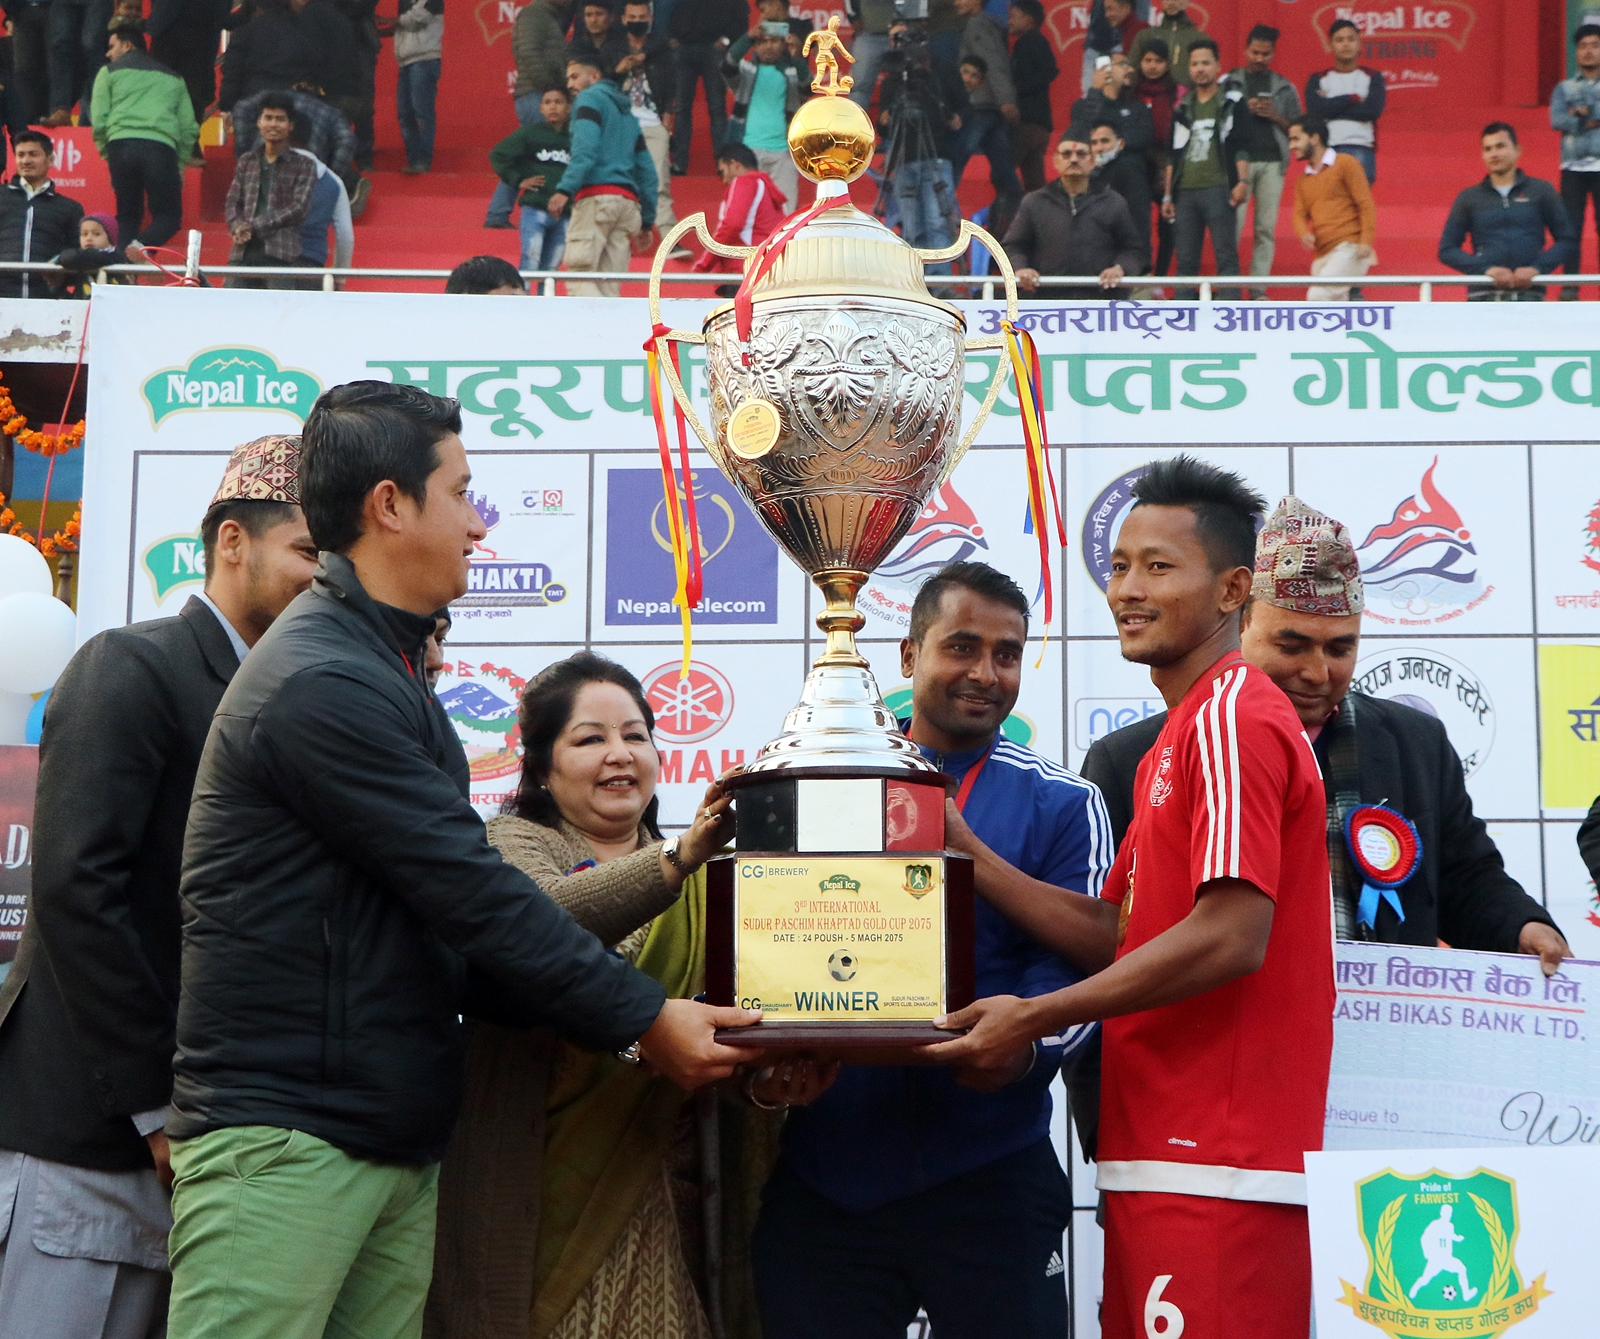 NPC players and officials receiving the Nepal Ice International nFarwest Khaptad Gold Cup trophy from social activist Arzu Rana Deuba in Dhangadhi on Saturday.